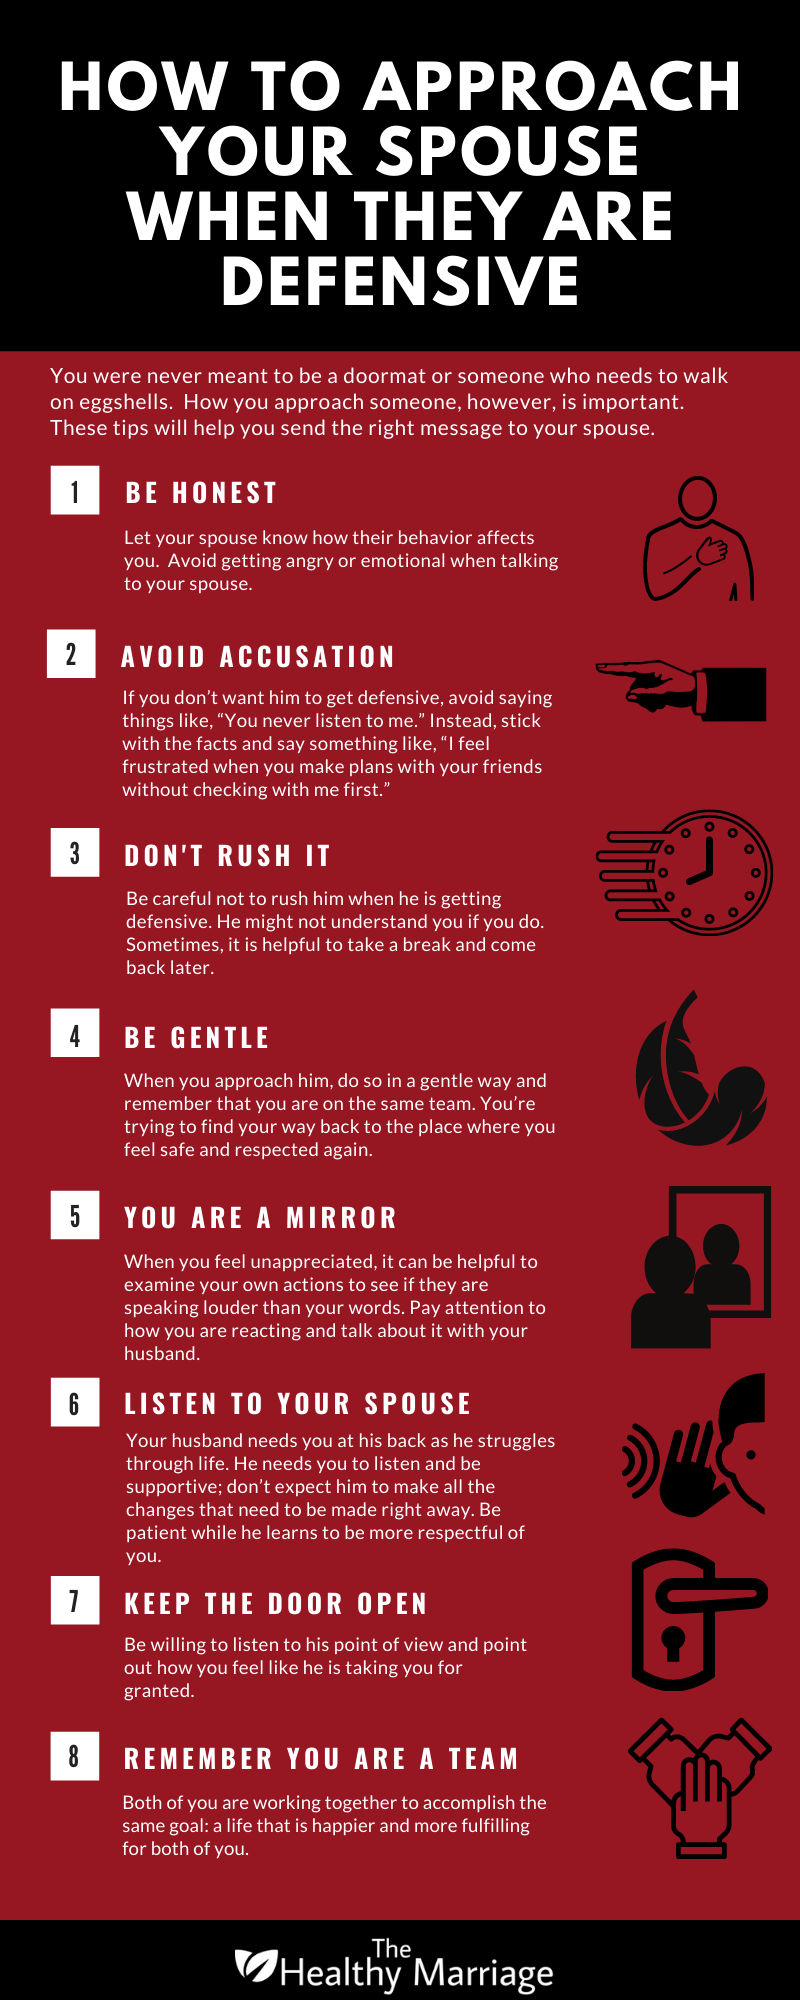 How To Approach Your Spouse When They Are Defensive Infographic